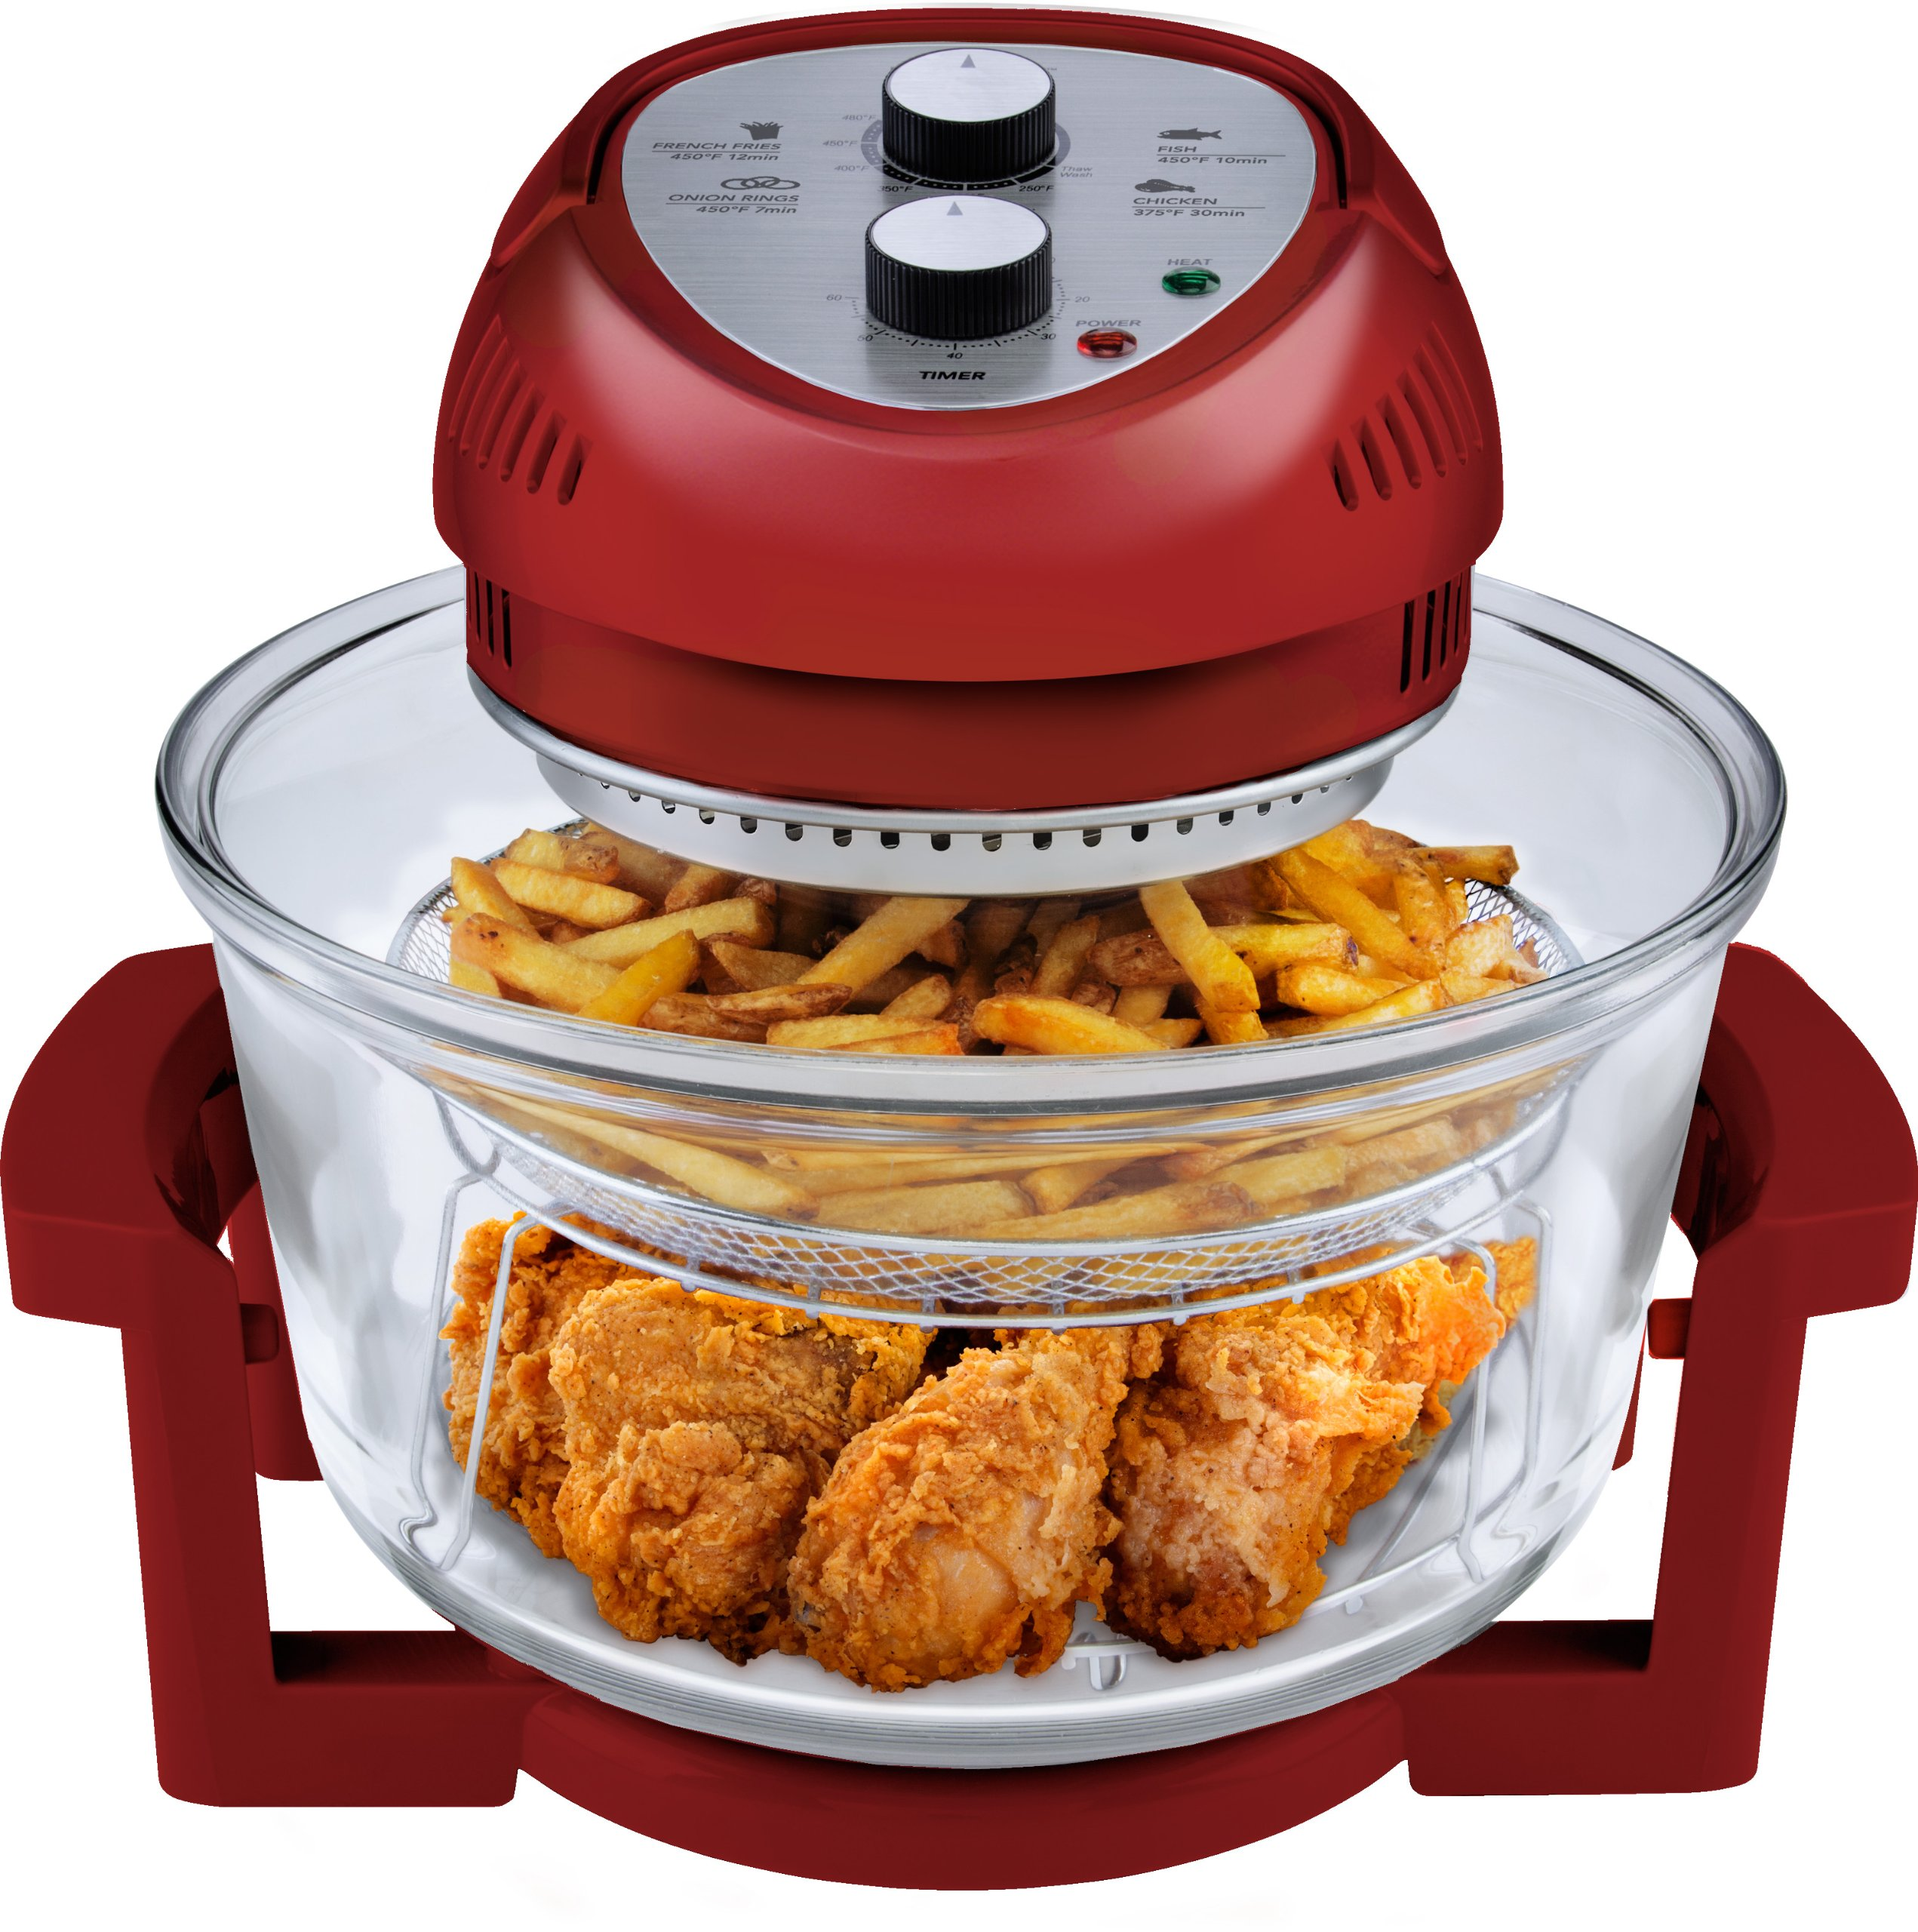 Big Boss Oil-less Air Fryer, 16 Quart, 1300 watt, Red